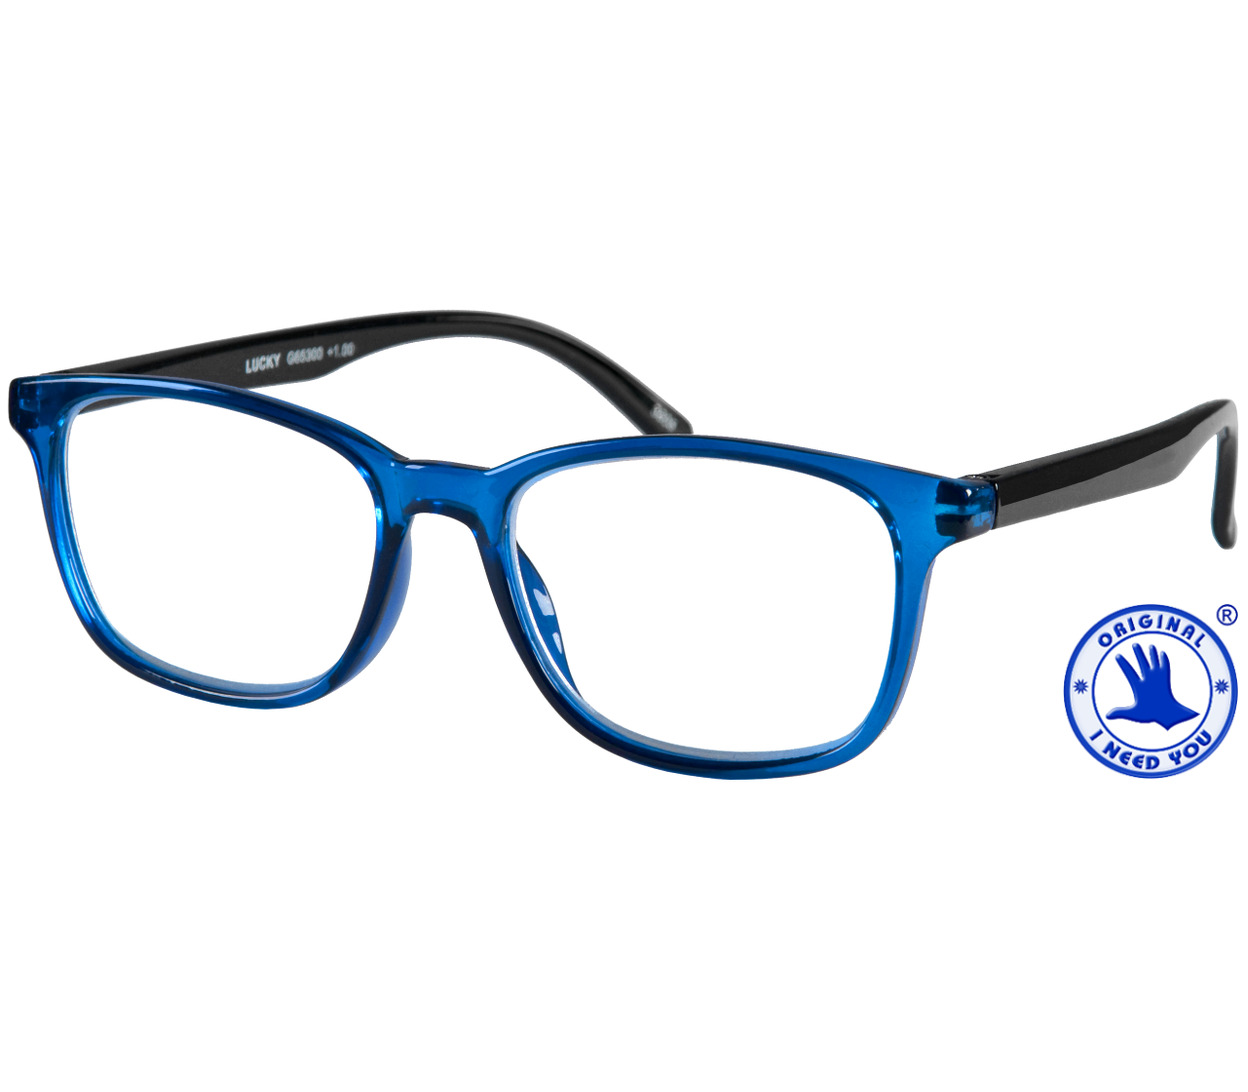 Main Image (Angle) - Rocket (Blue) Retro Reading Glasses